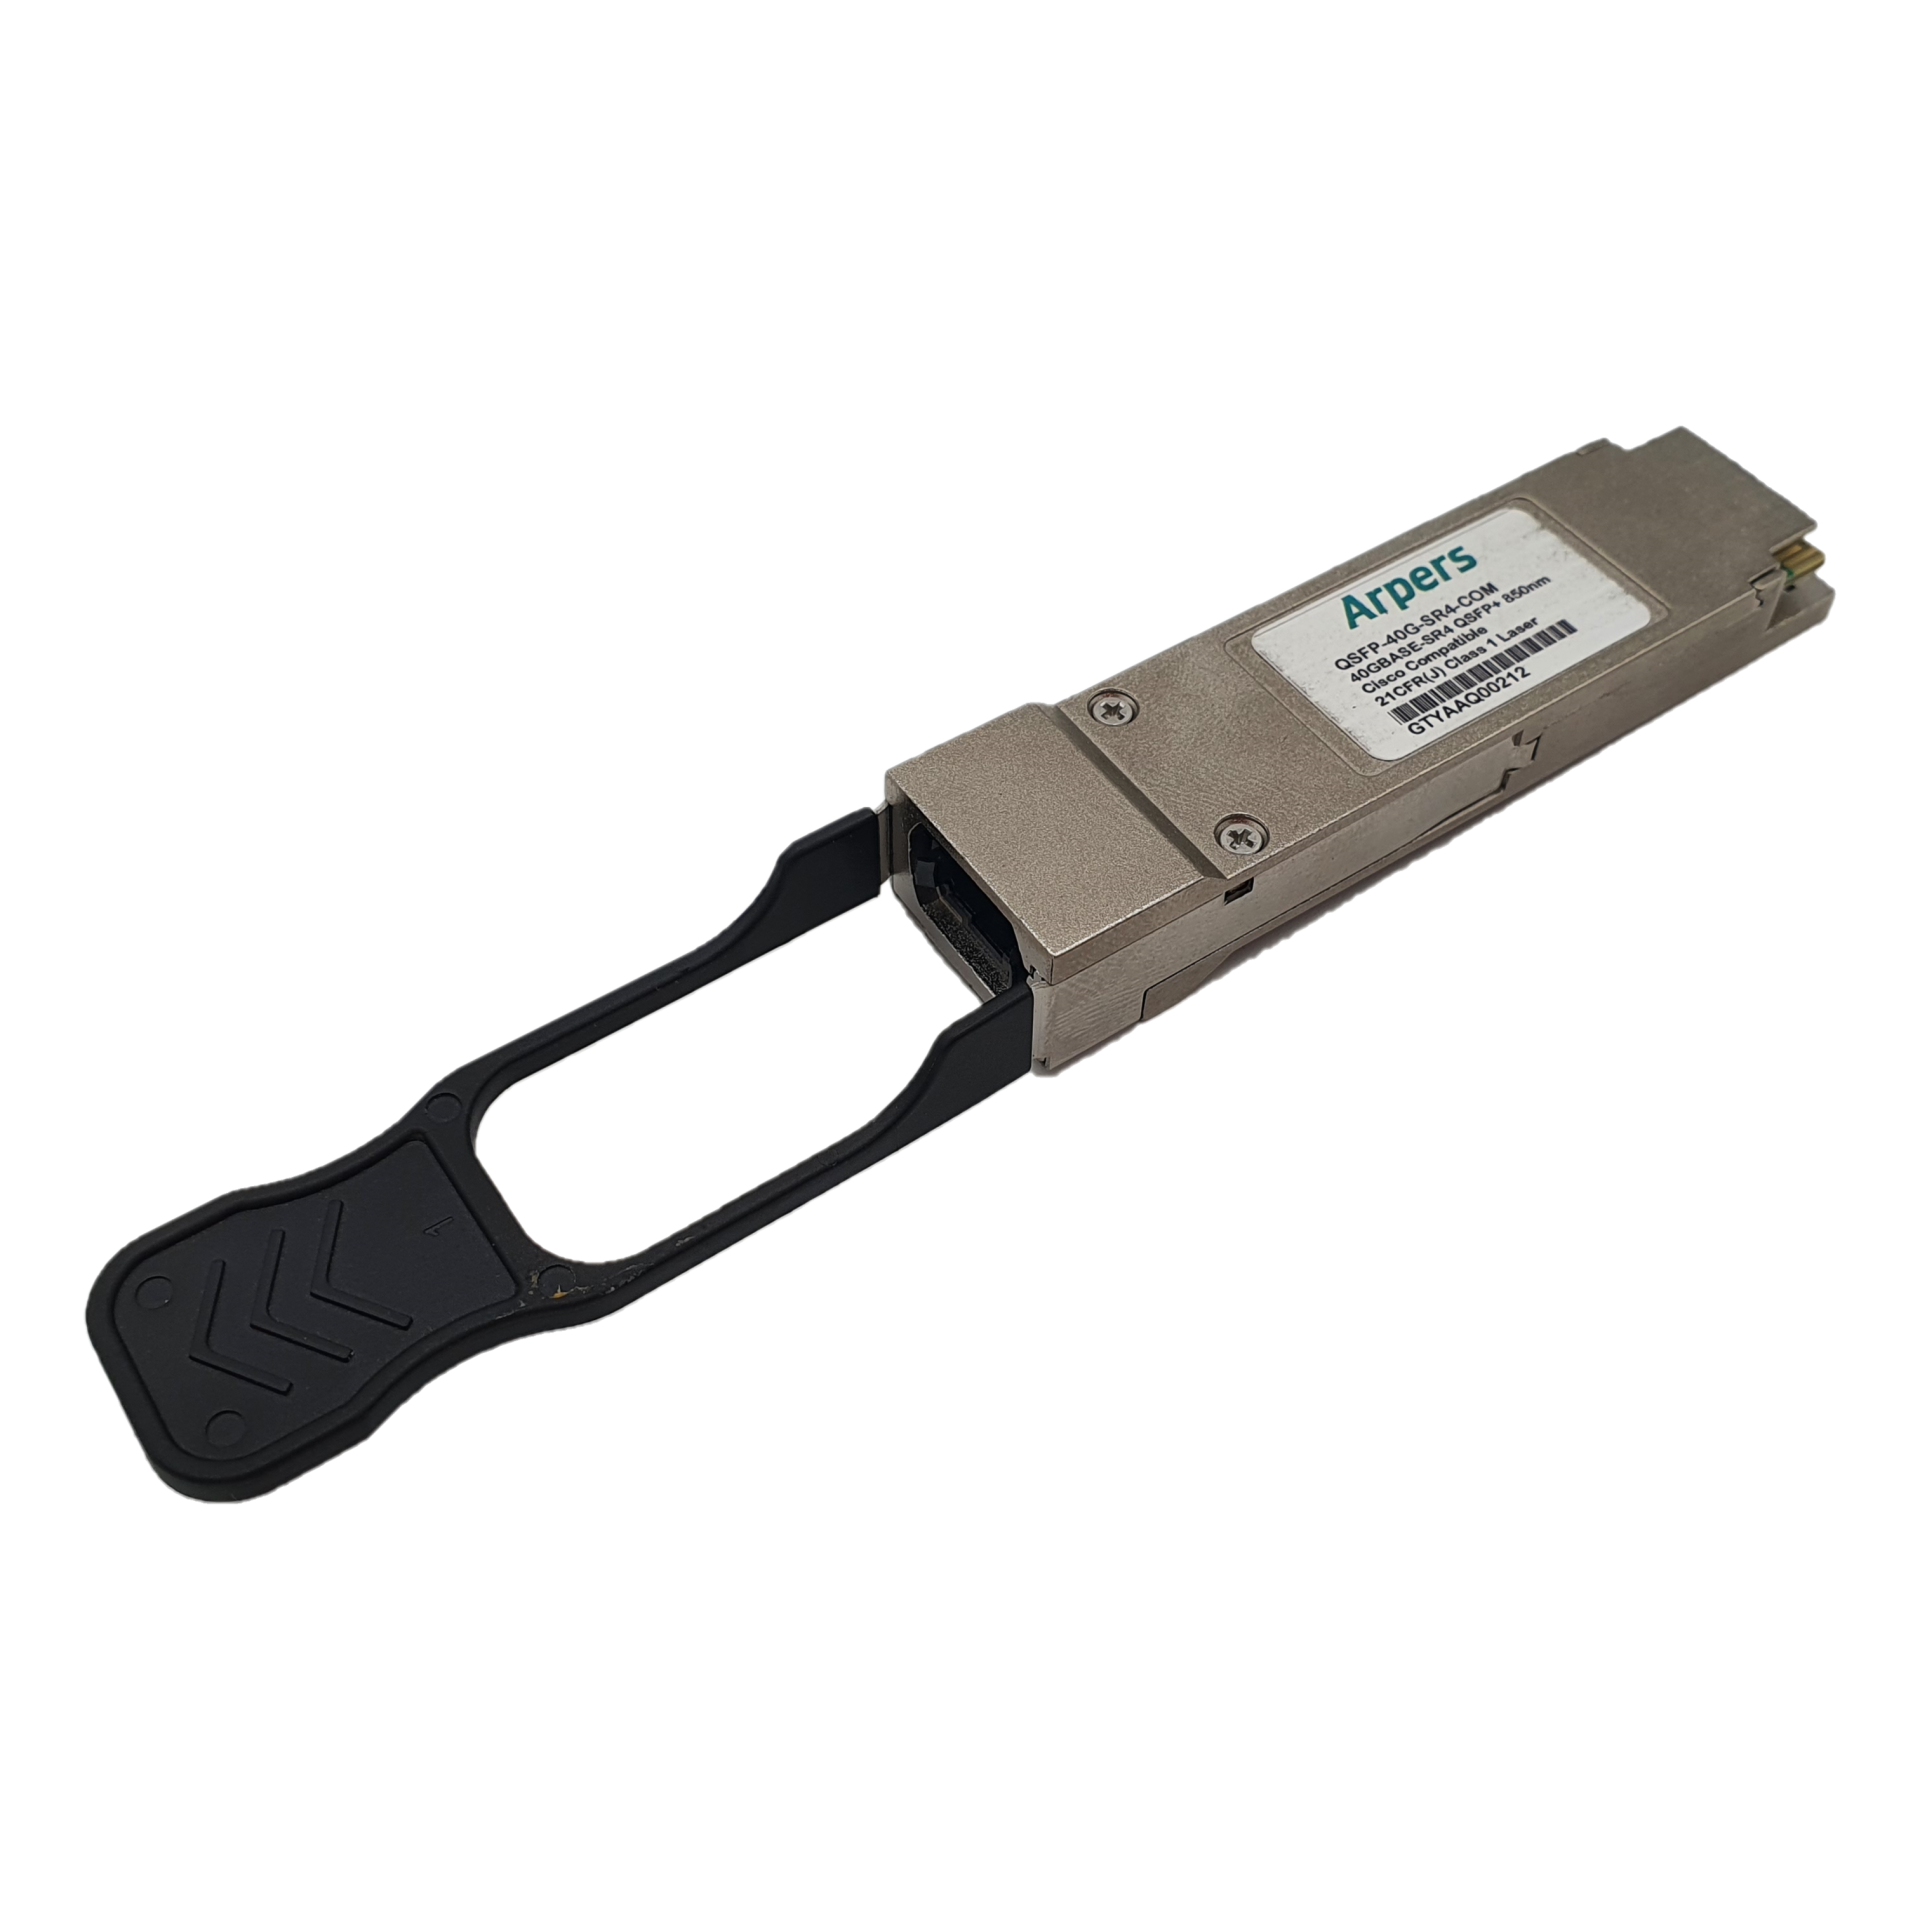 Transceiver compatible QSFP-40G-SR4-COM Arpers 40GBASE-SR4 QSFP+ Module for MMF, 150m reach for Cisco